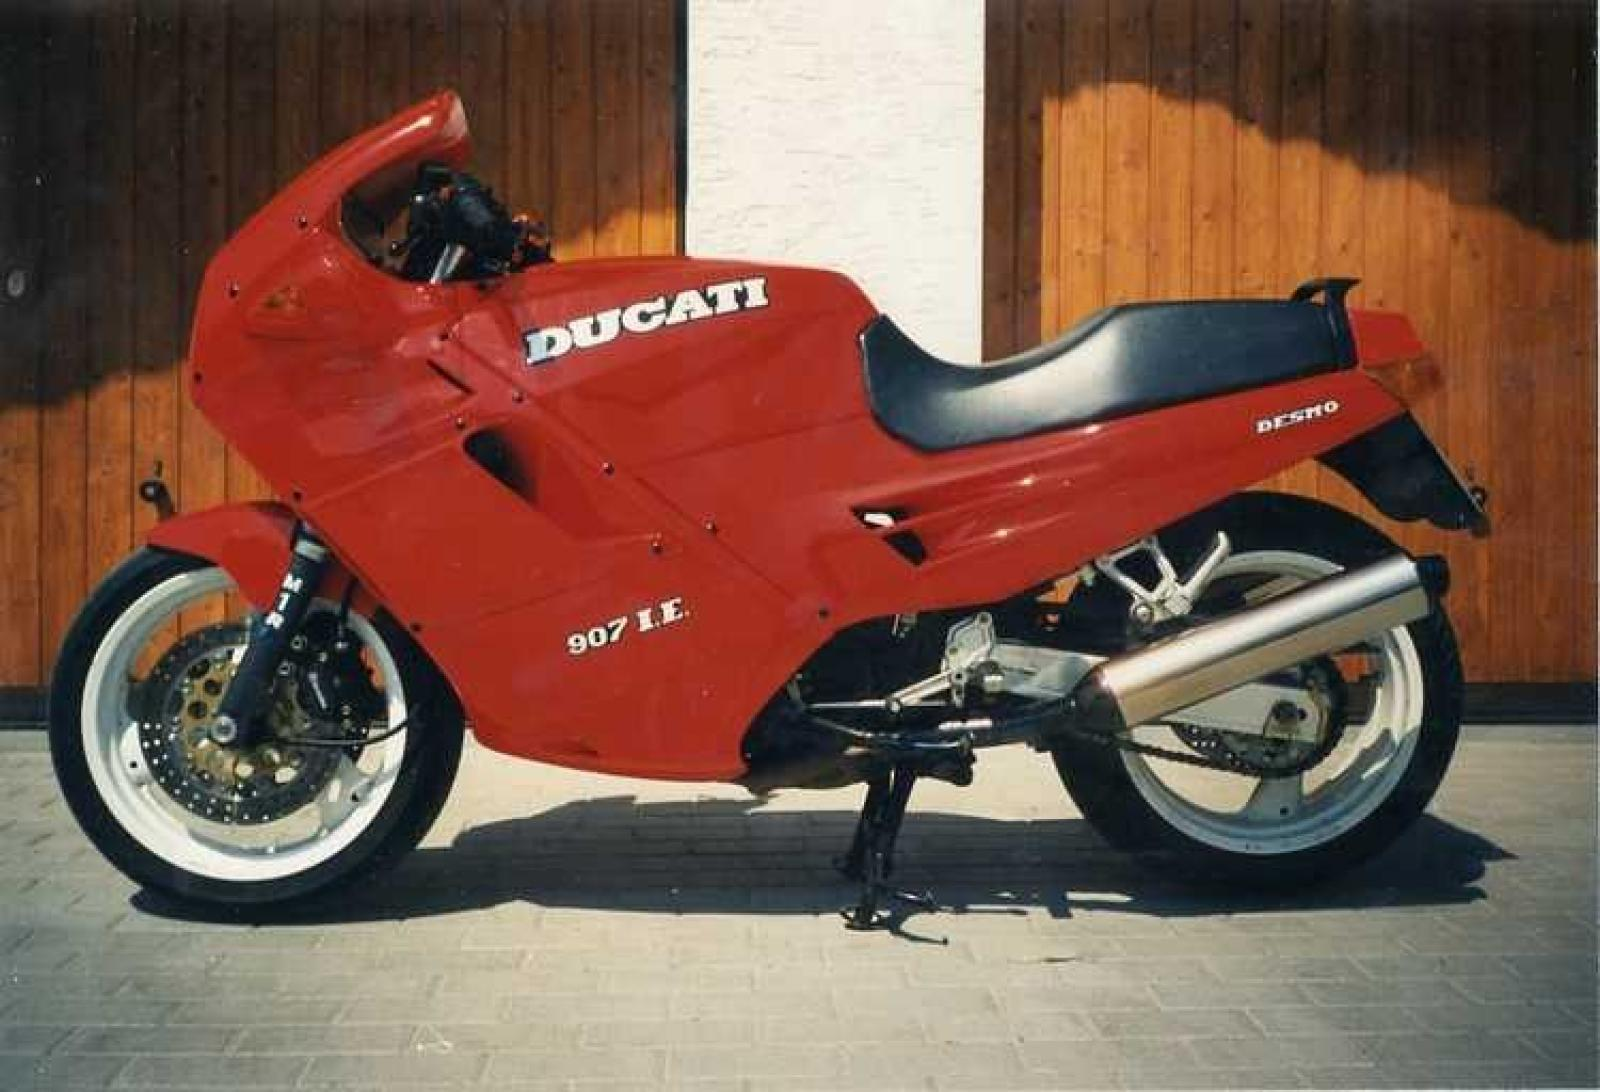 Ducati 907 i.e. 1991 wallpapers #11898